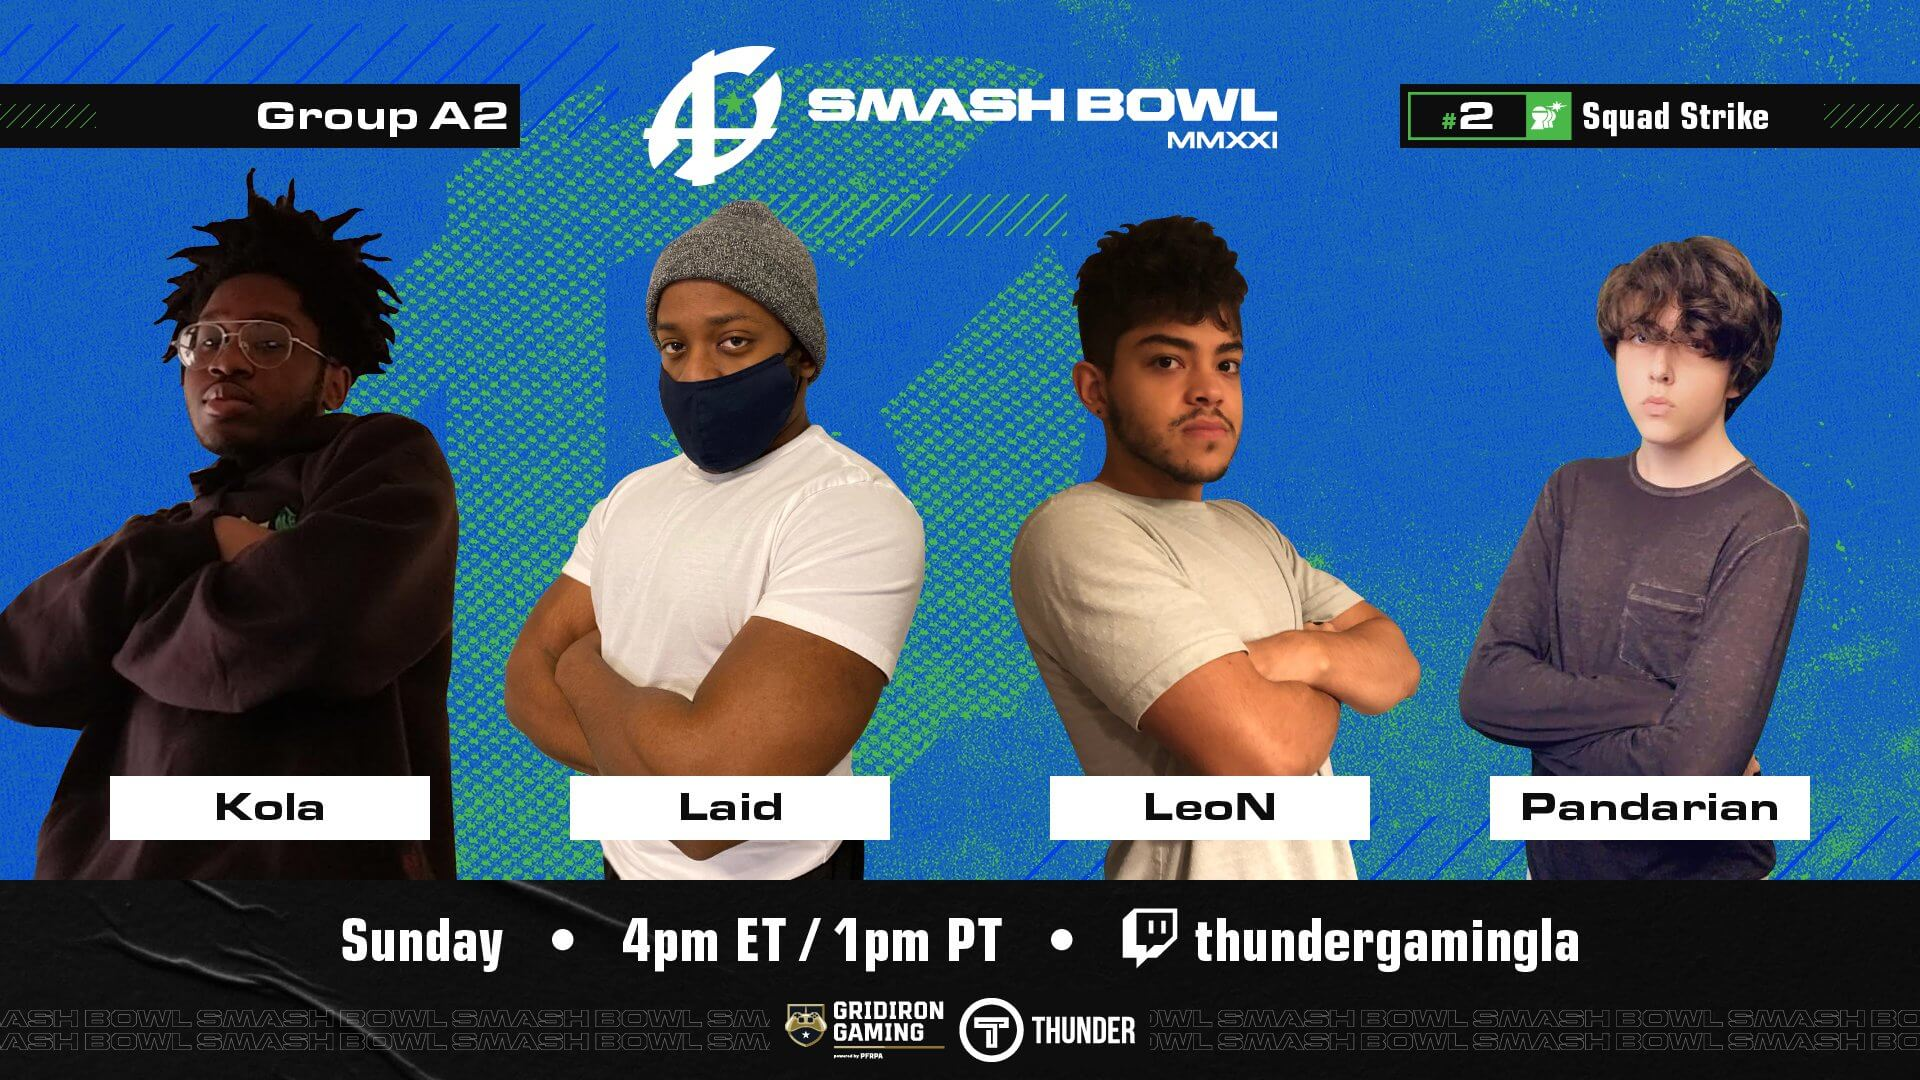 Smash Bowl MMXXI Week Two Summary & Highlights